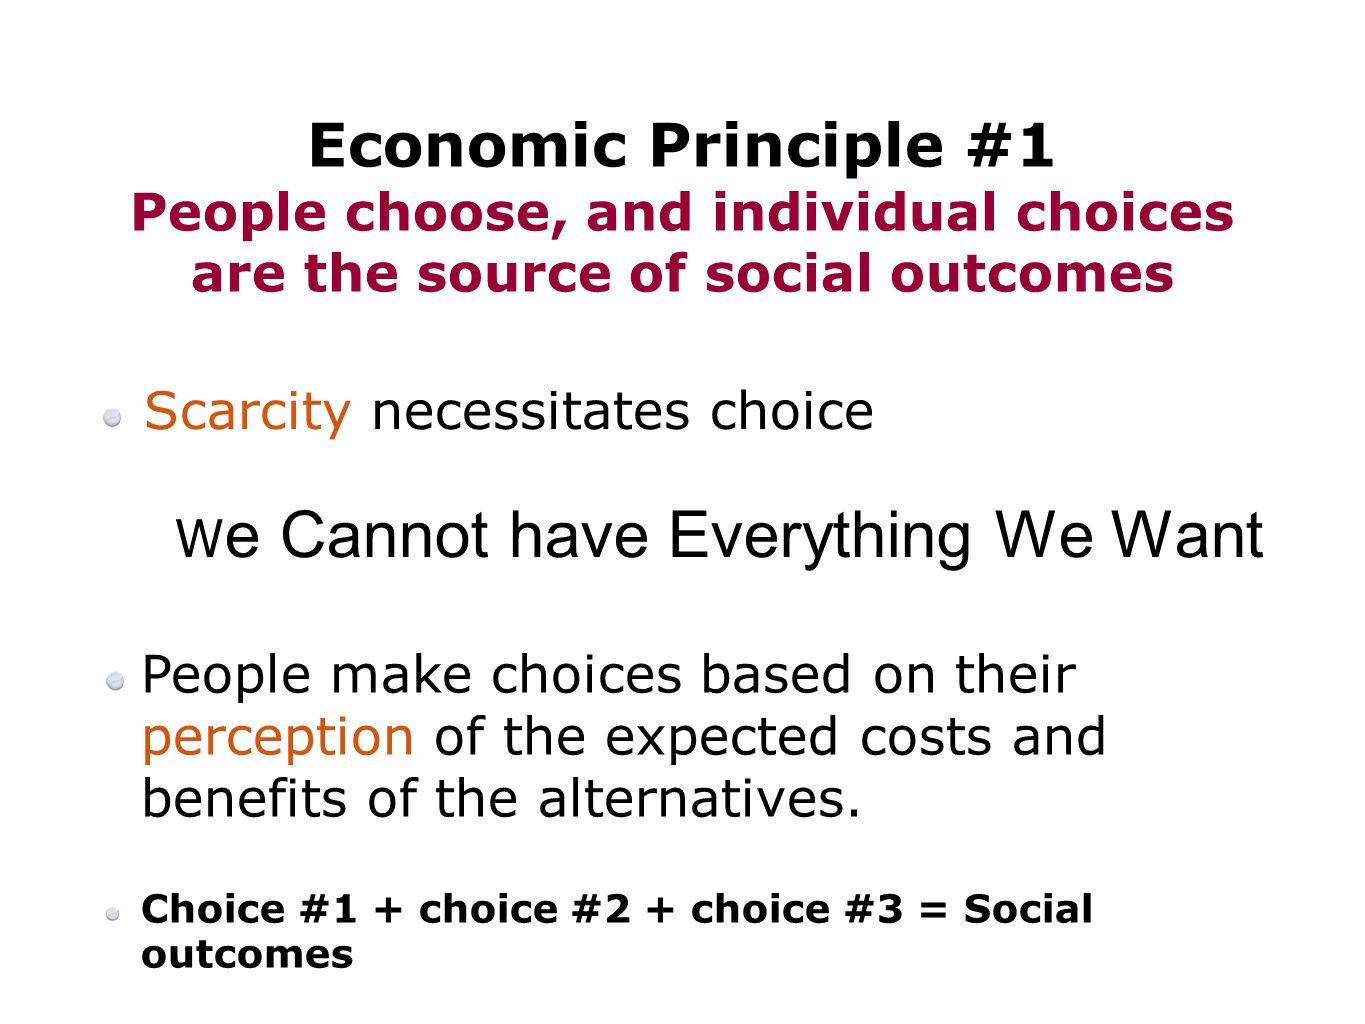 Scarcity necessitates choice W e Cannot have Everything We Want Economic Principle #1 People choose, and individual choices are the source of social outcomes People make choices based on their perception of the expected costs and benefits of the alternatives.